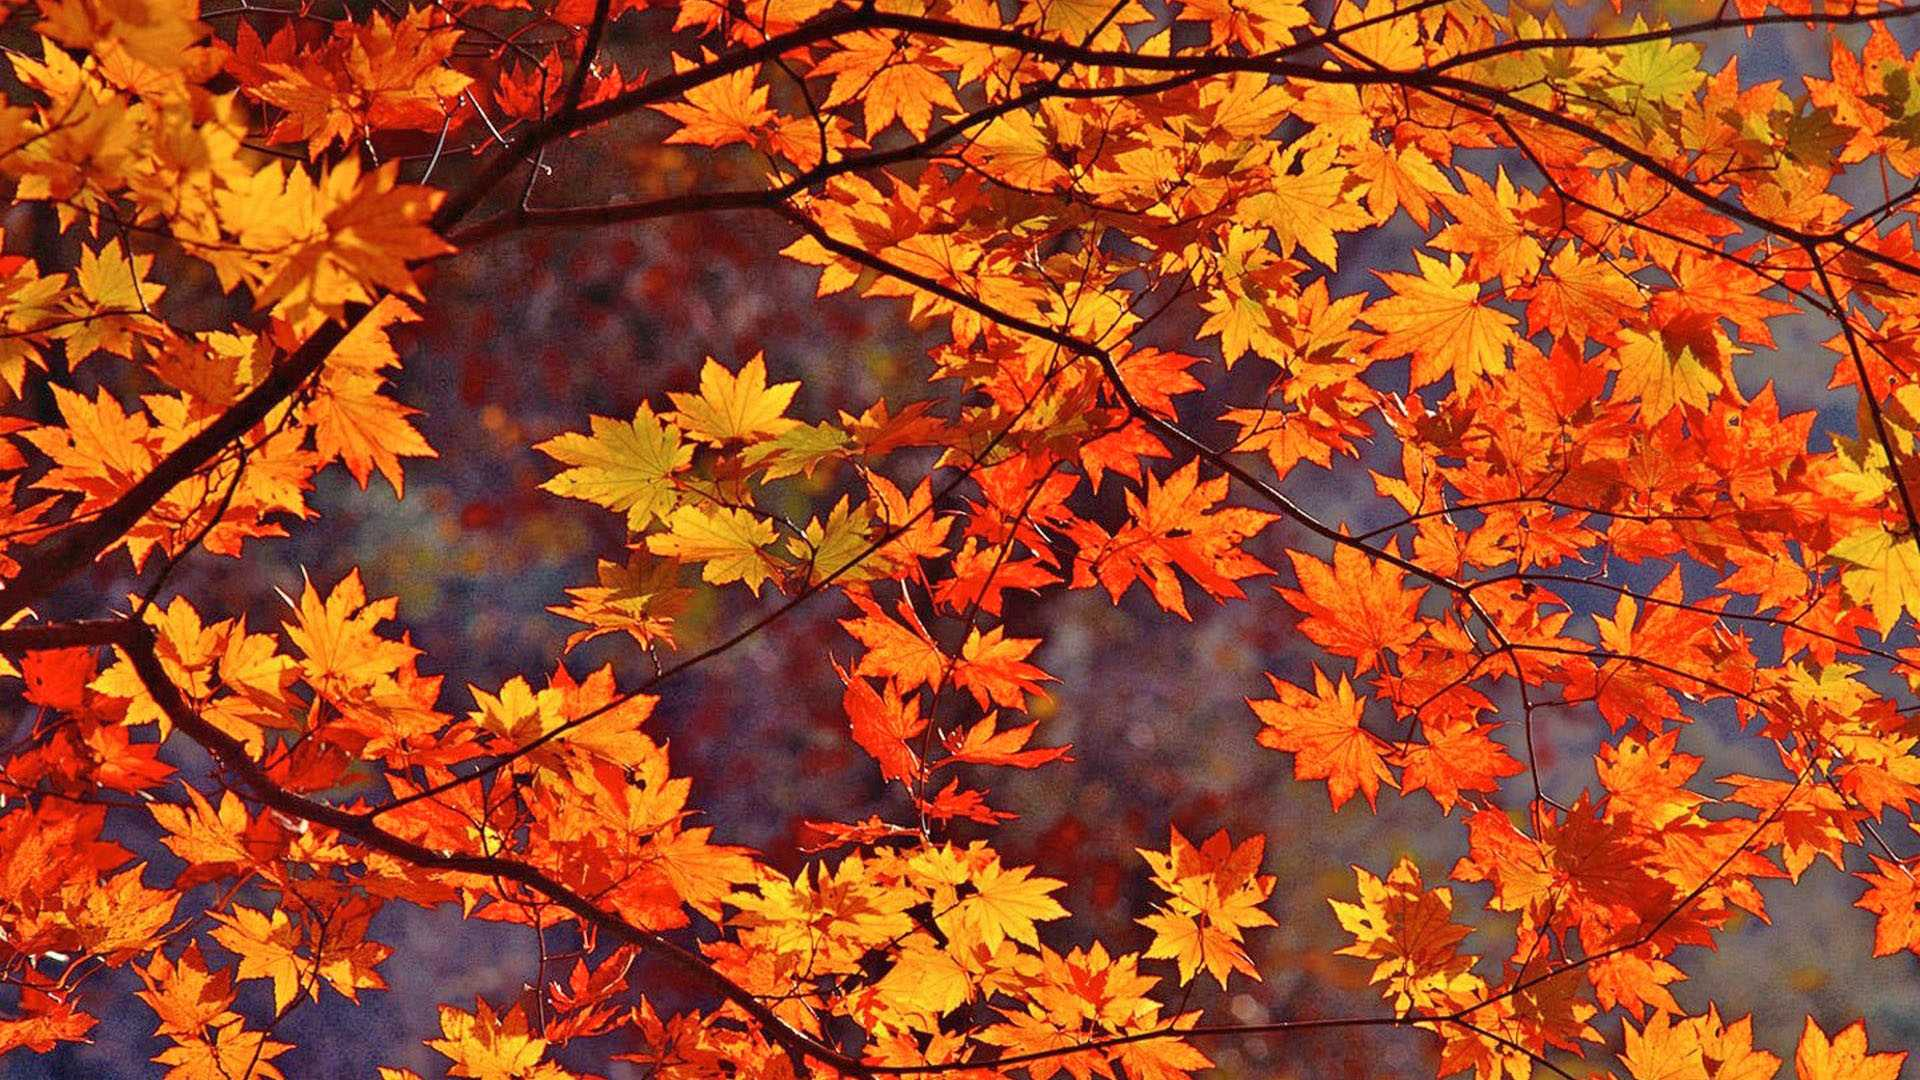 Autumn Leaves Wallpaper Widescreen Full Hd Pics For Iphone Fall ...